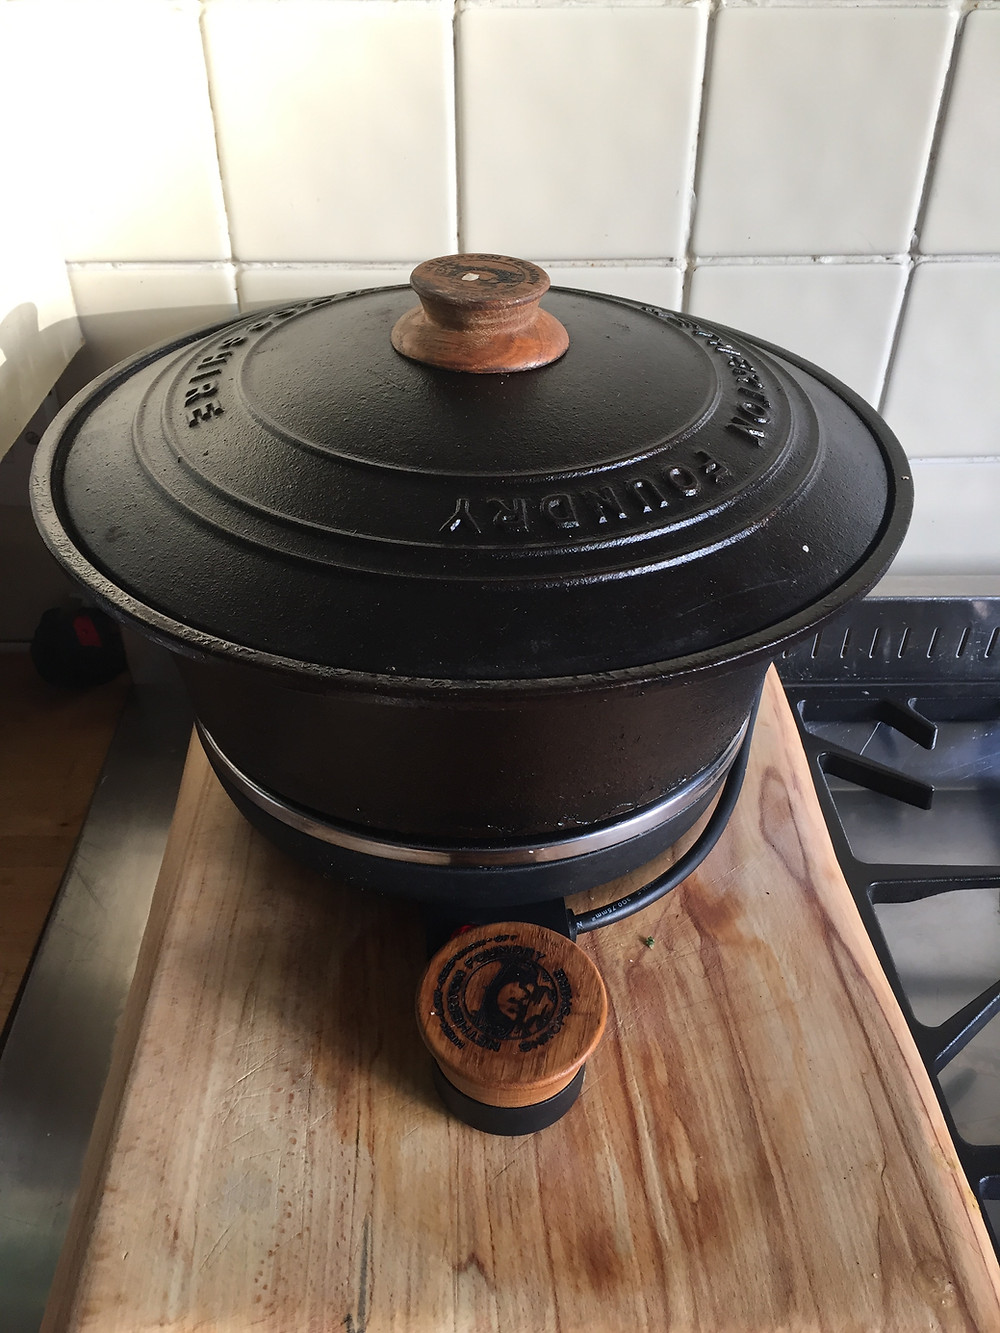 Netherton Foundry Slow Cooker